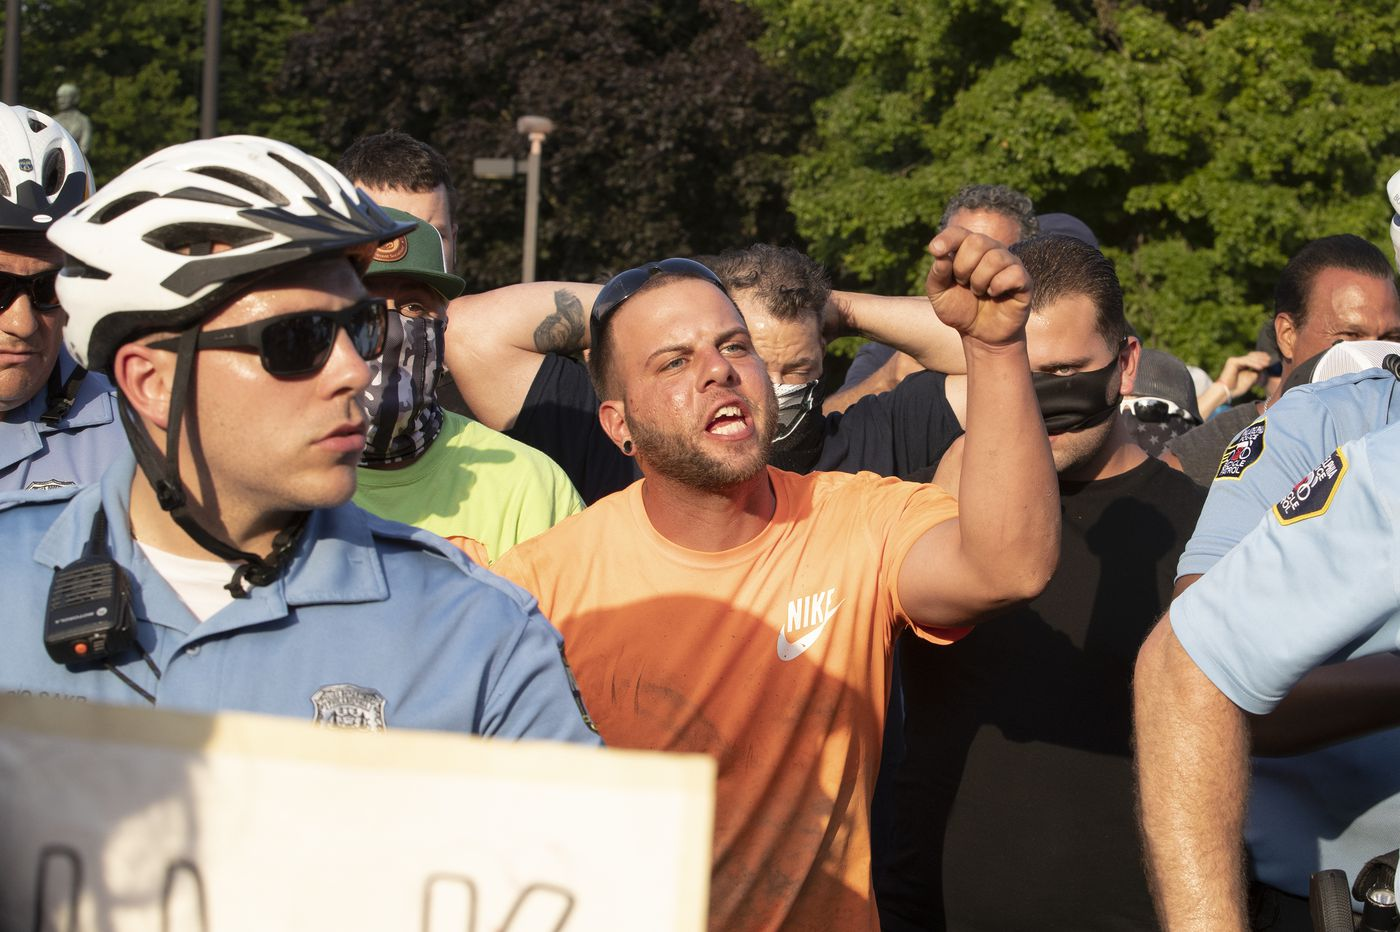 Police under fire for 'coddling' violent groups of white people in Fishtown, South Philly